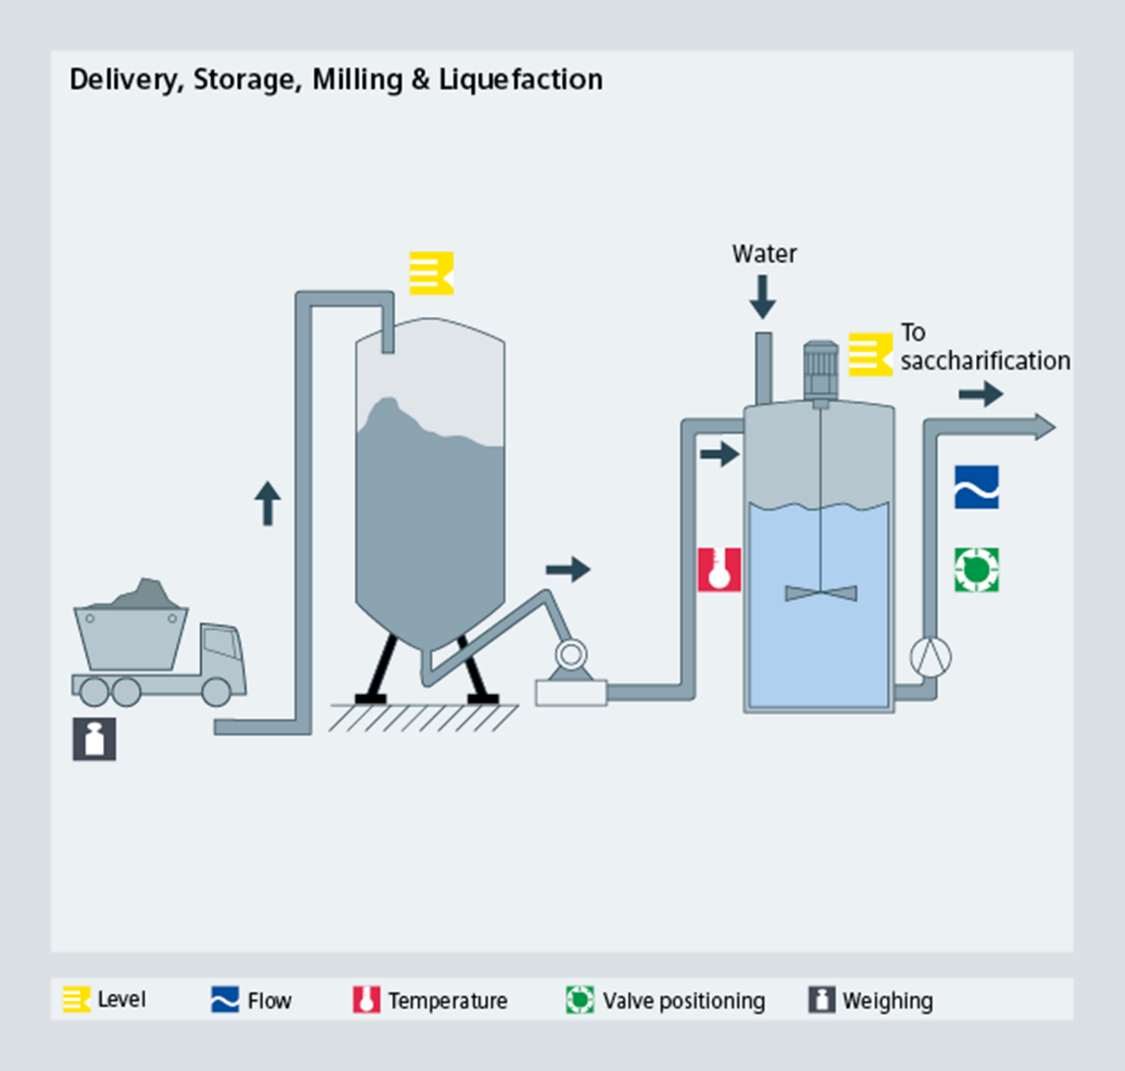 Bioethanol delivery, storage, milling, liquefaction - Siemens USA